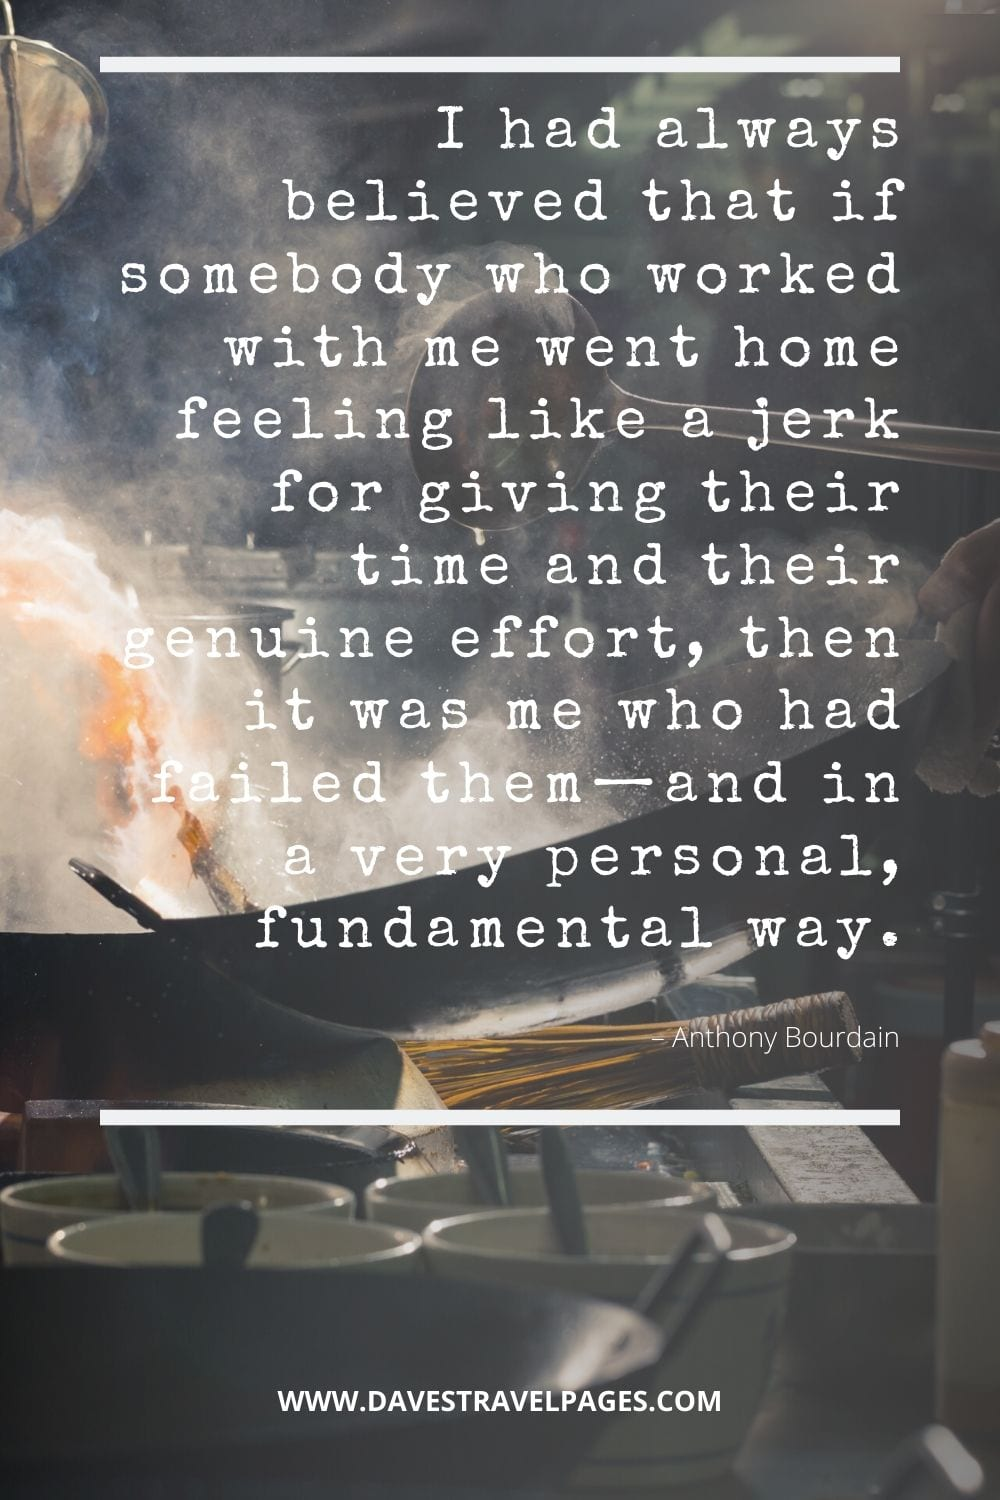 """""""I had always believed that if somebody who worked with me went home feeling like a jerk for giving their time and their genuine effort, then it was me who had failed them—and in a very personal, fundamental way."""" Bourdain Quote"""